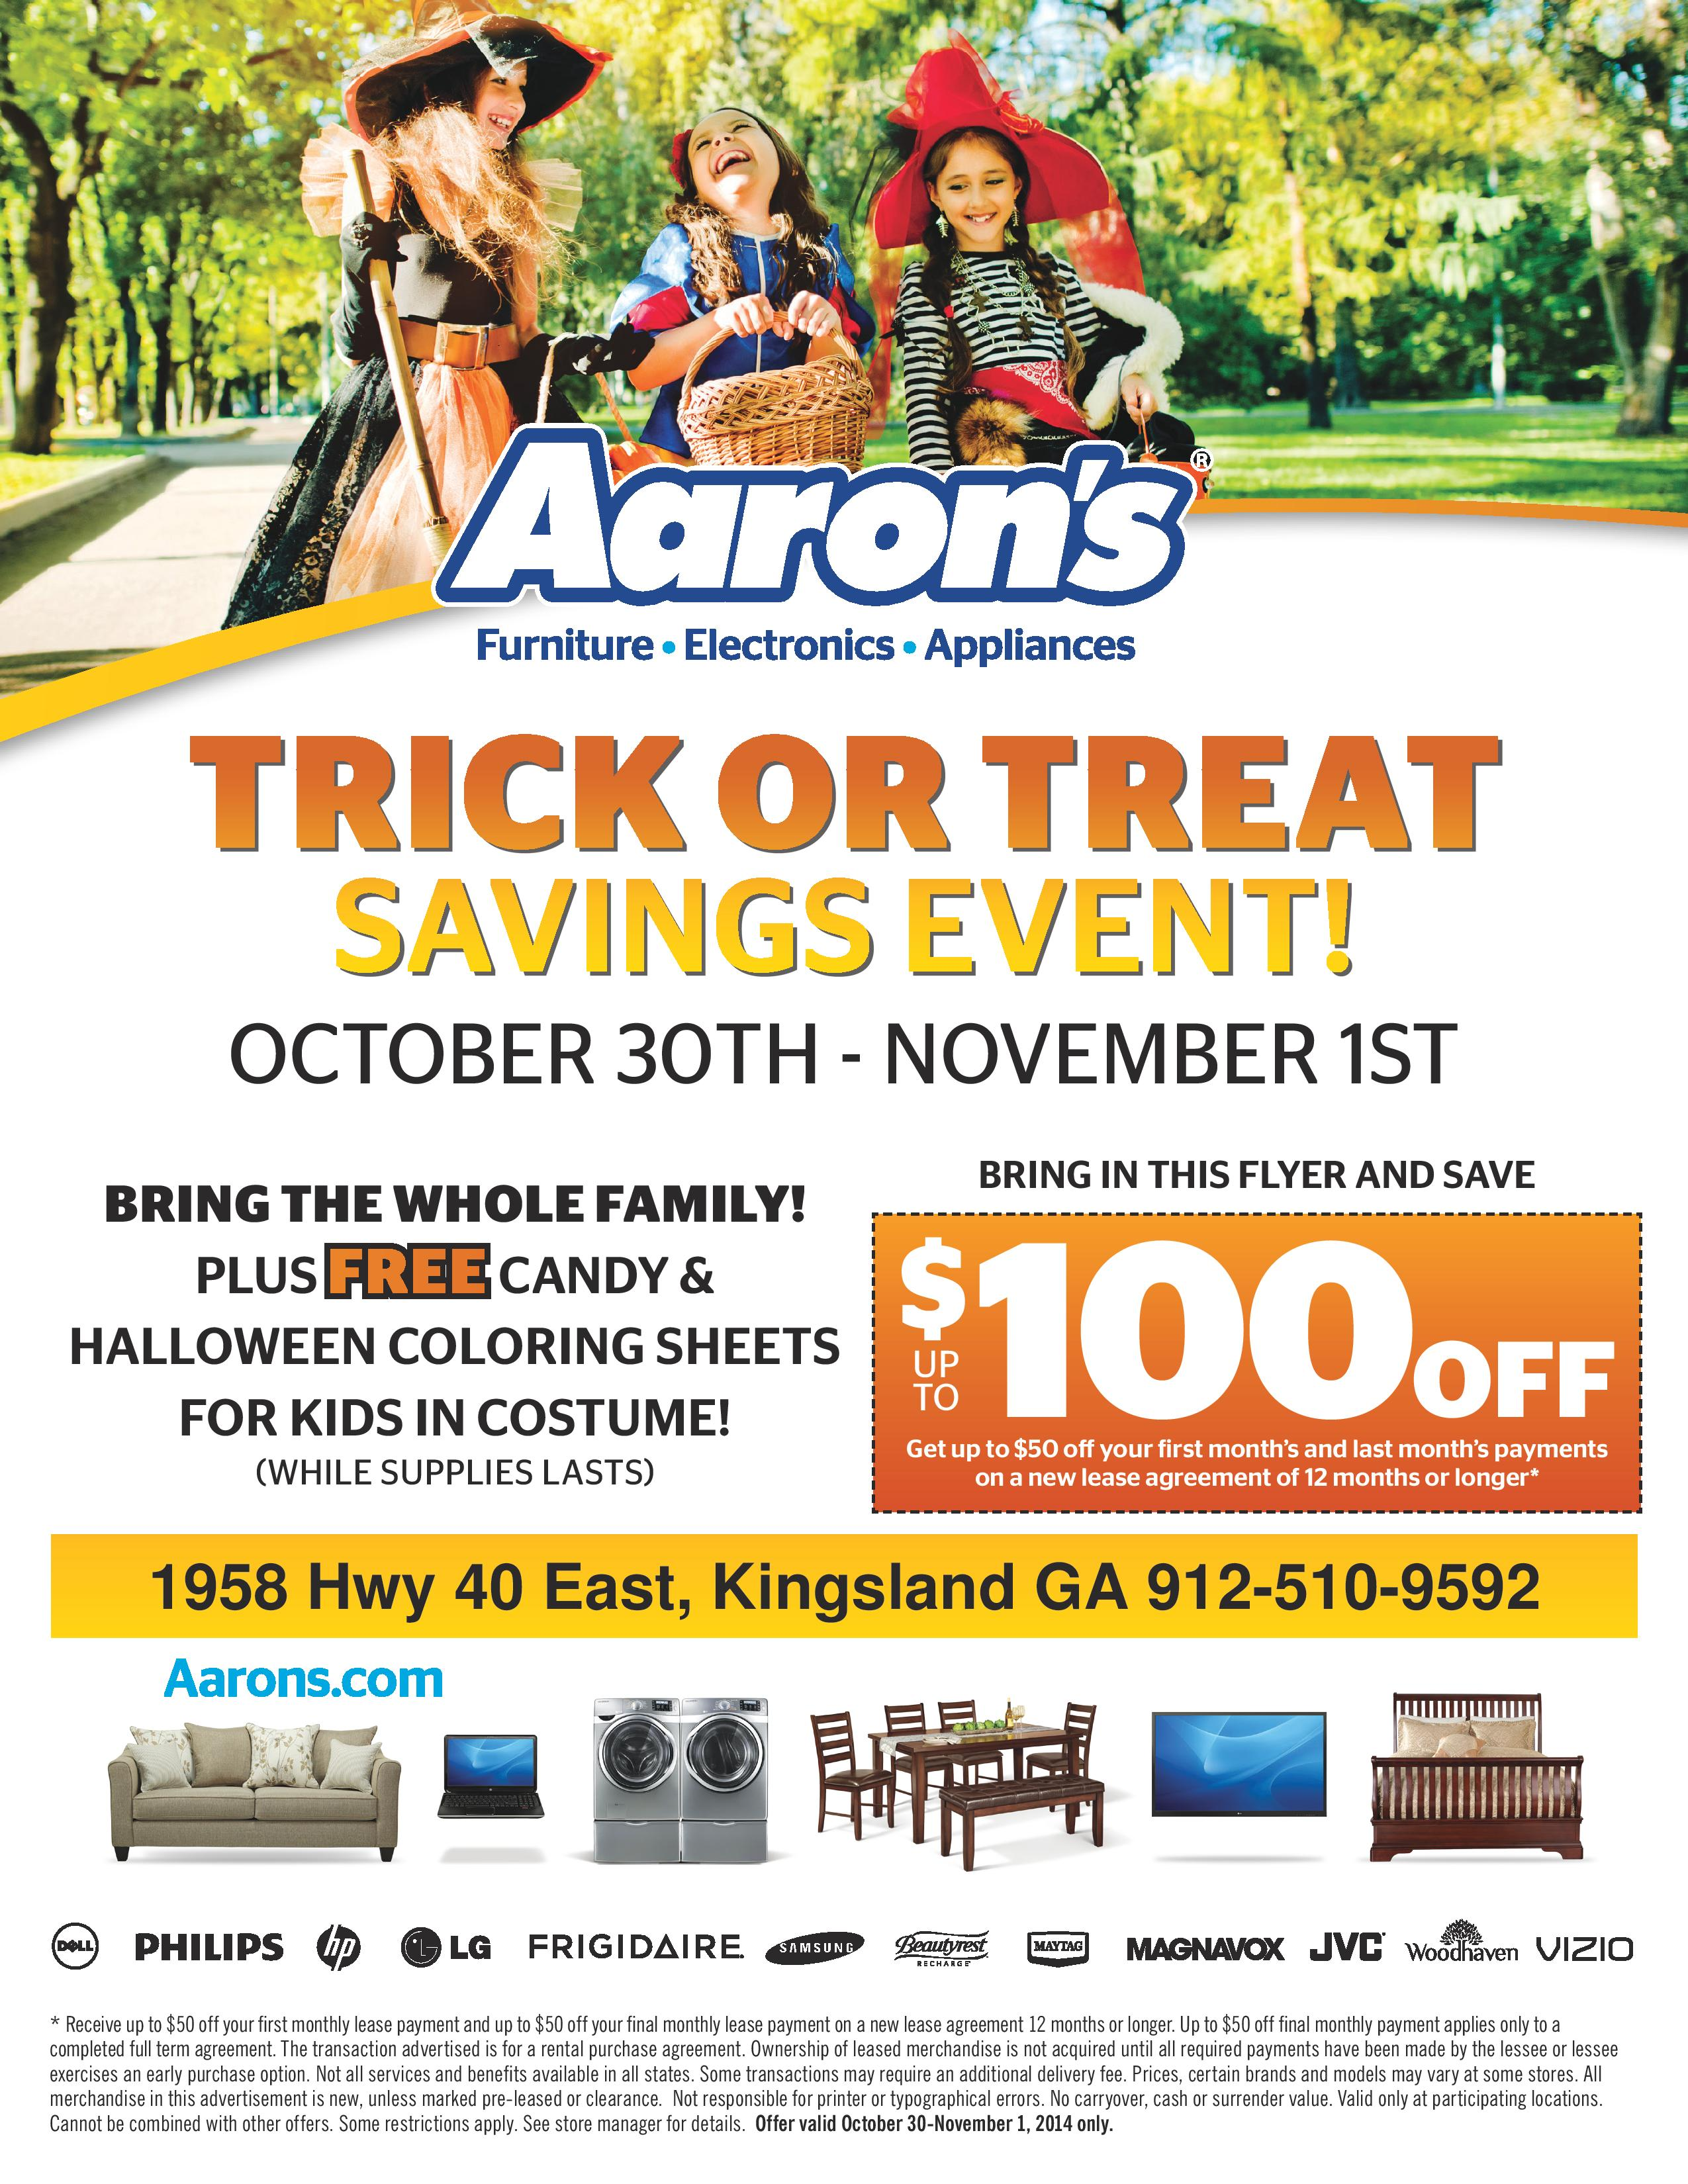 Aarons Trick Or Treat Savings Event